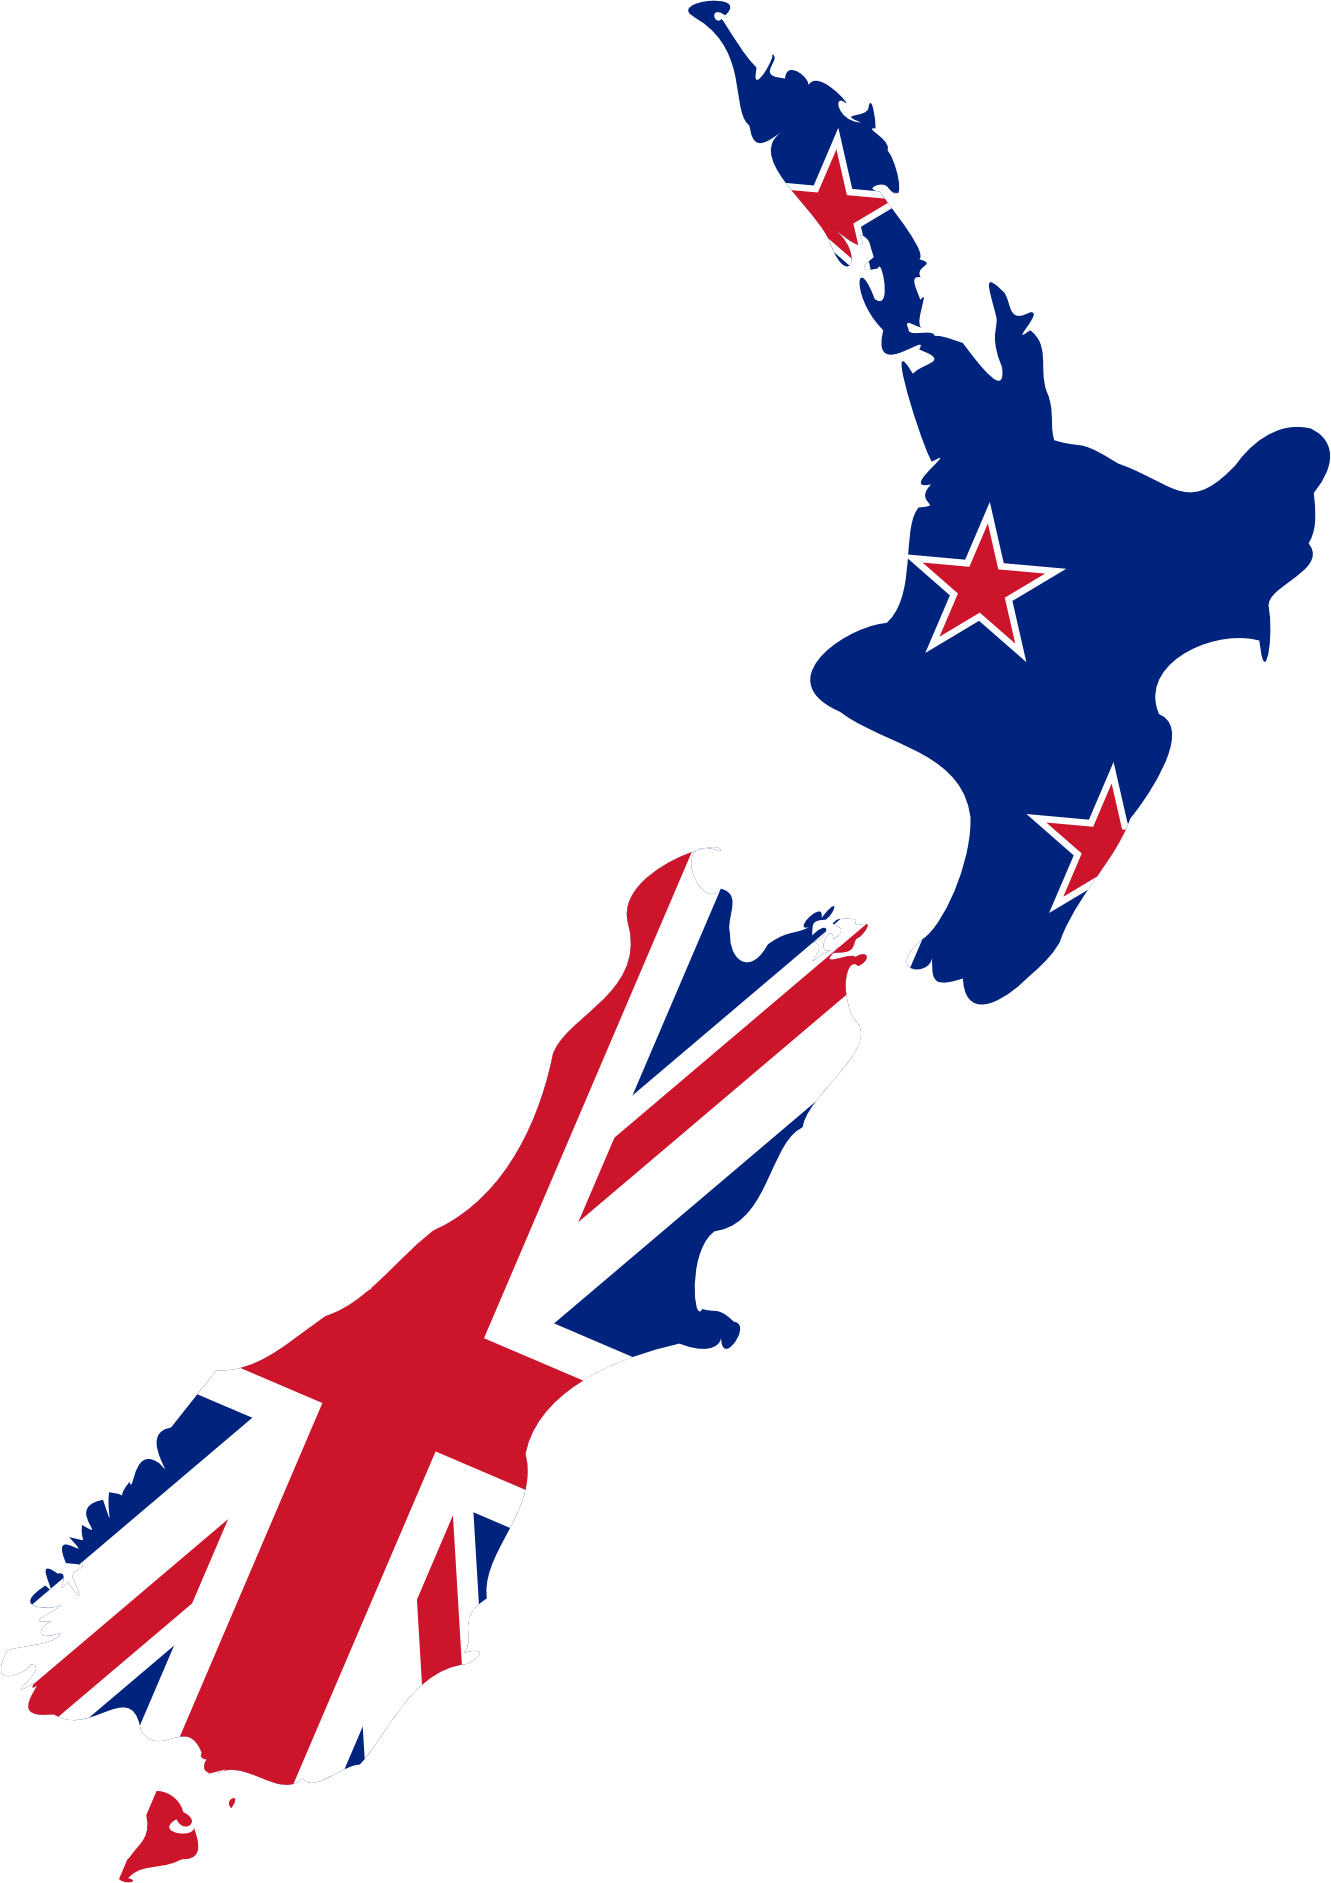 New Zealand clipart New Zealand Flag  Is flag Hargreaves brand?